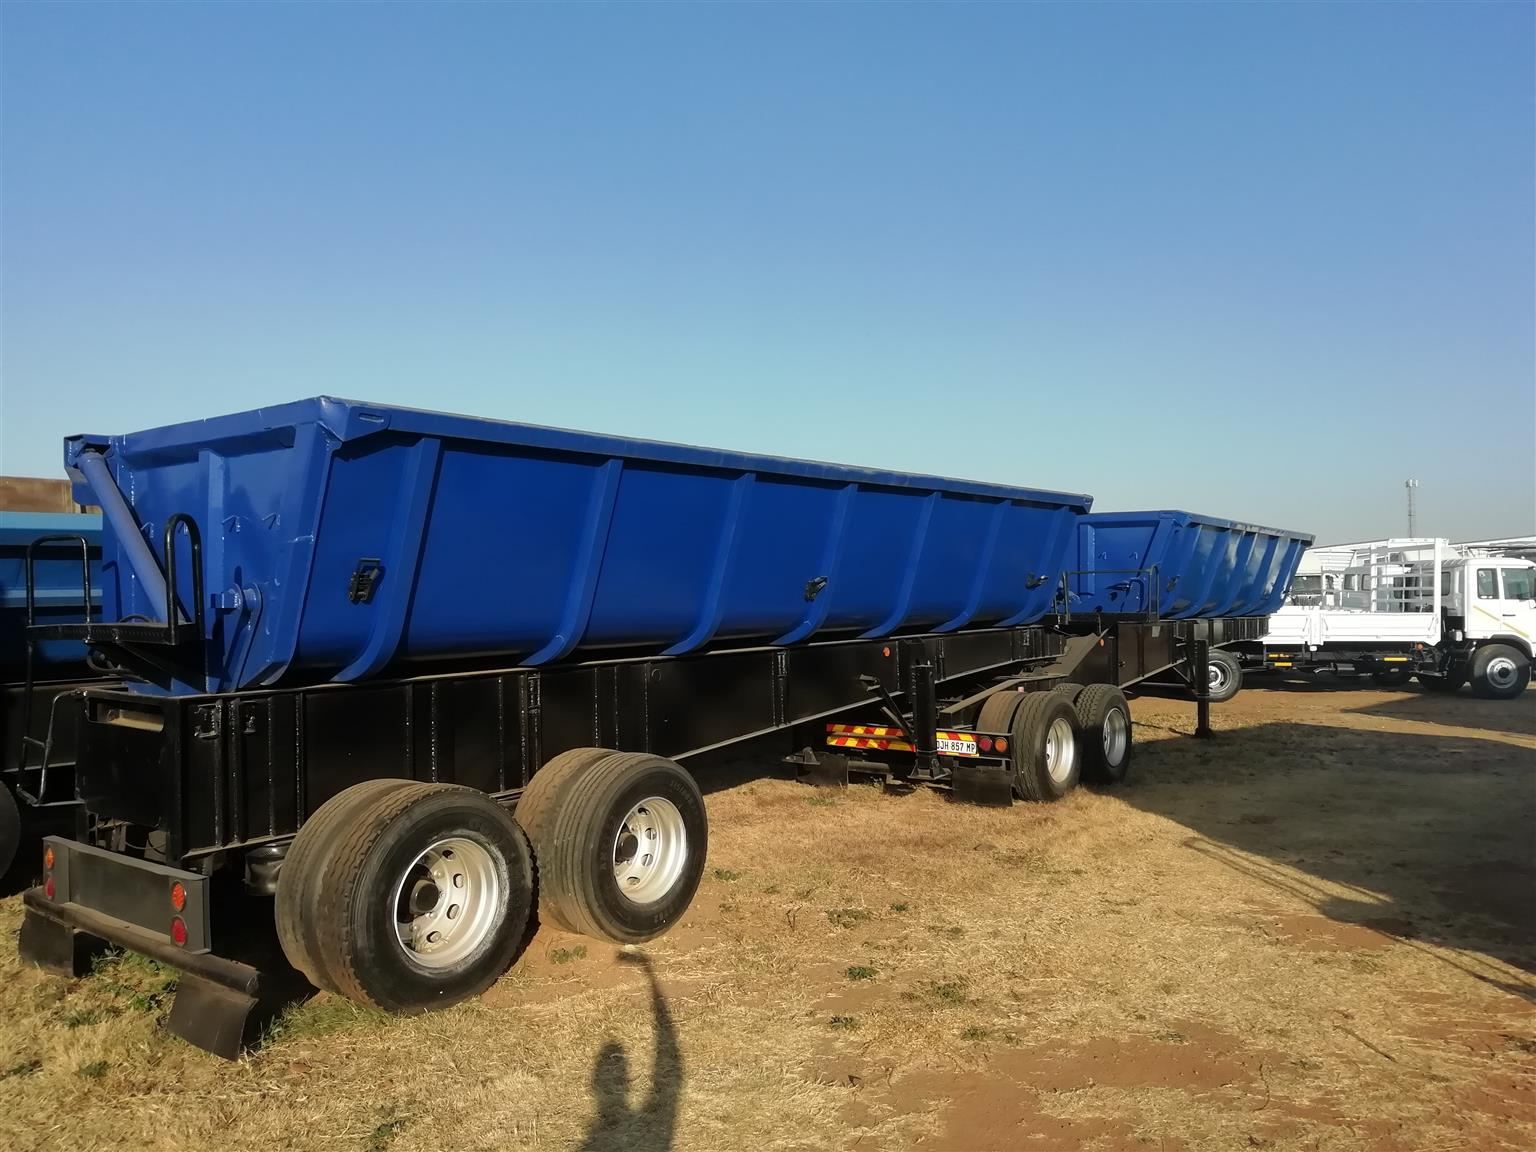 34 TON SIDE TIPPER TRAILERS FOR SALE! READY TO WORK! ADD THESE TO YOUR FLEET!